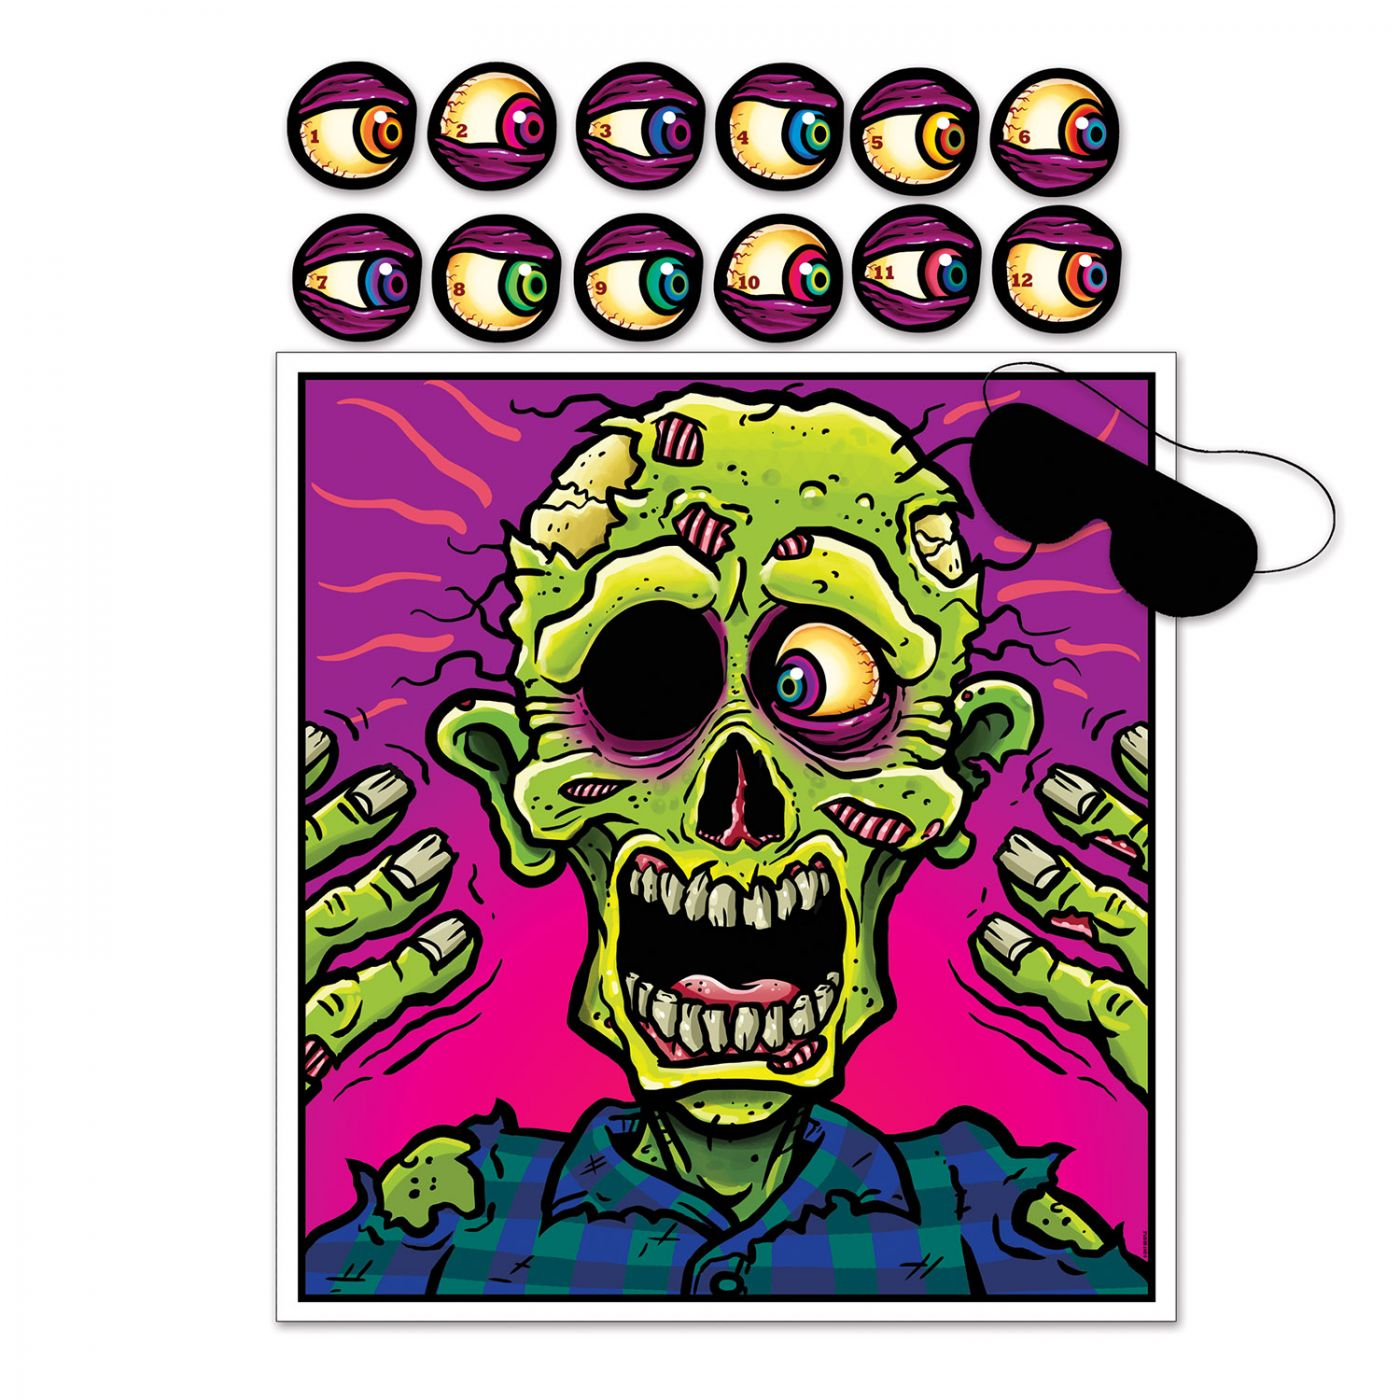 Pin The Eyeball On The Zombie Game (24) image